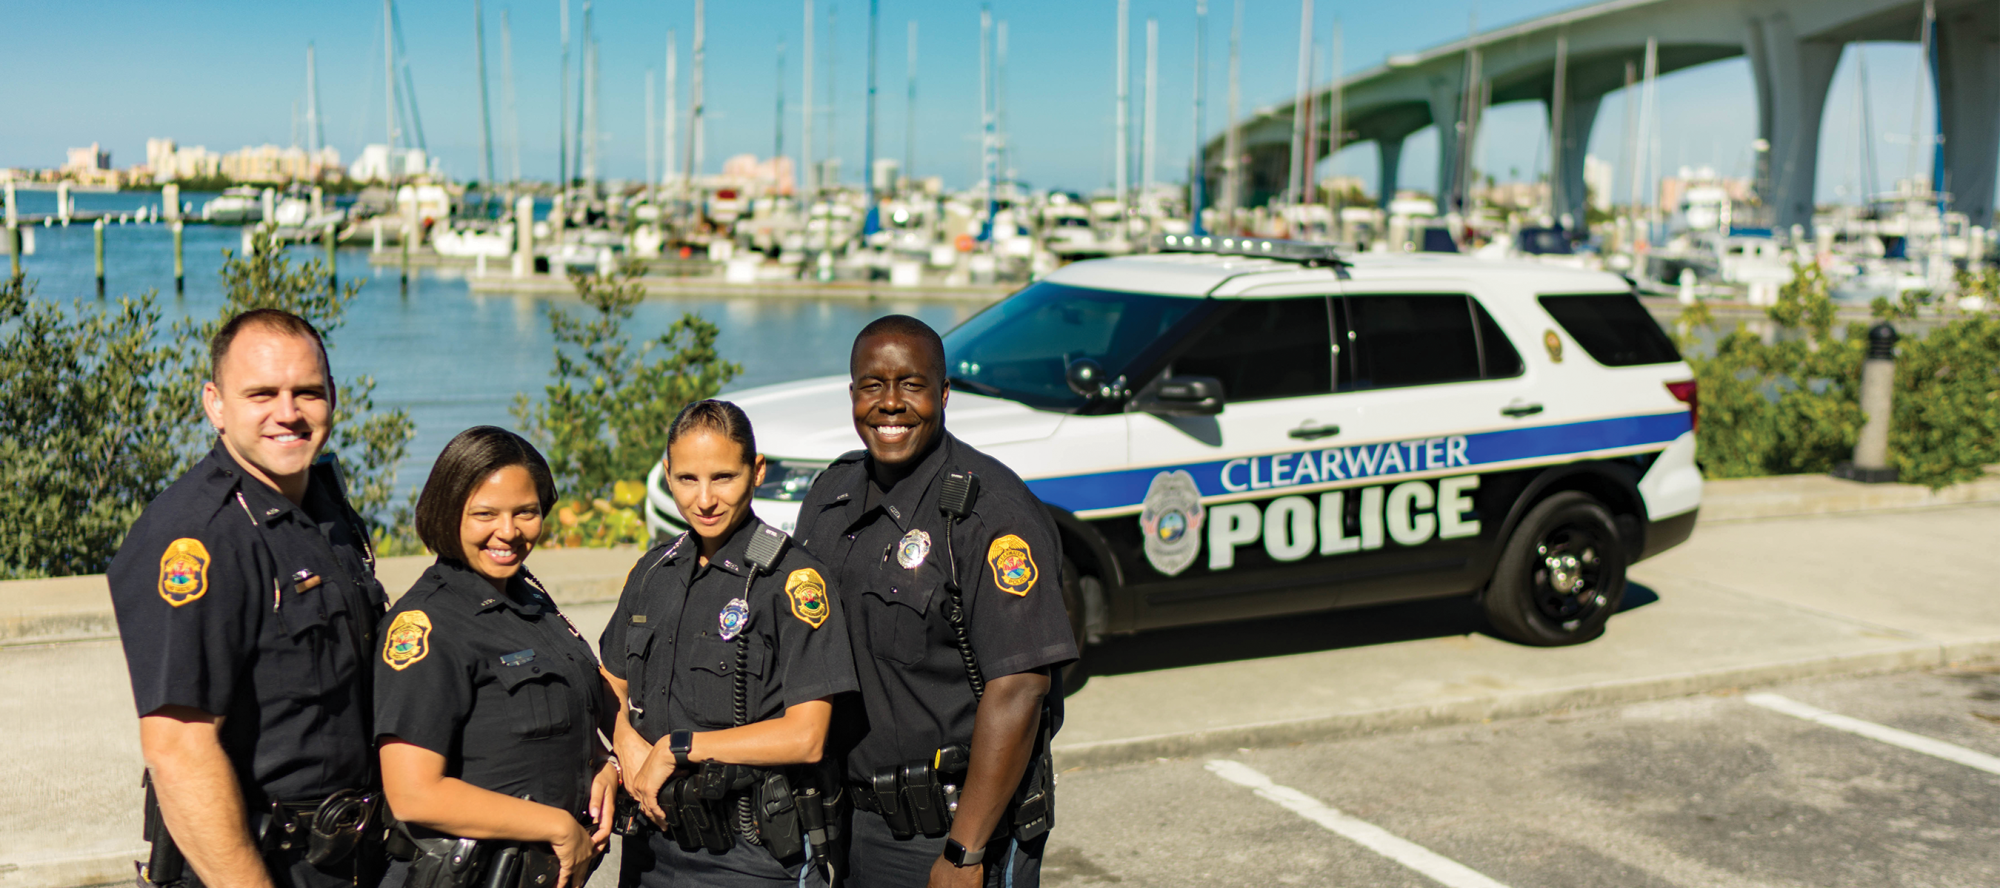 Become an Officer | Clearwater, FL Police Department